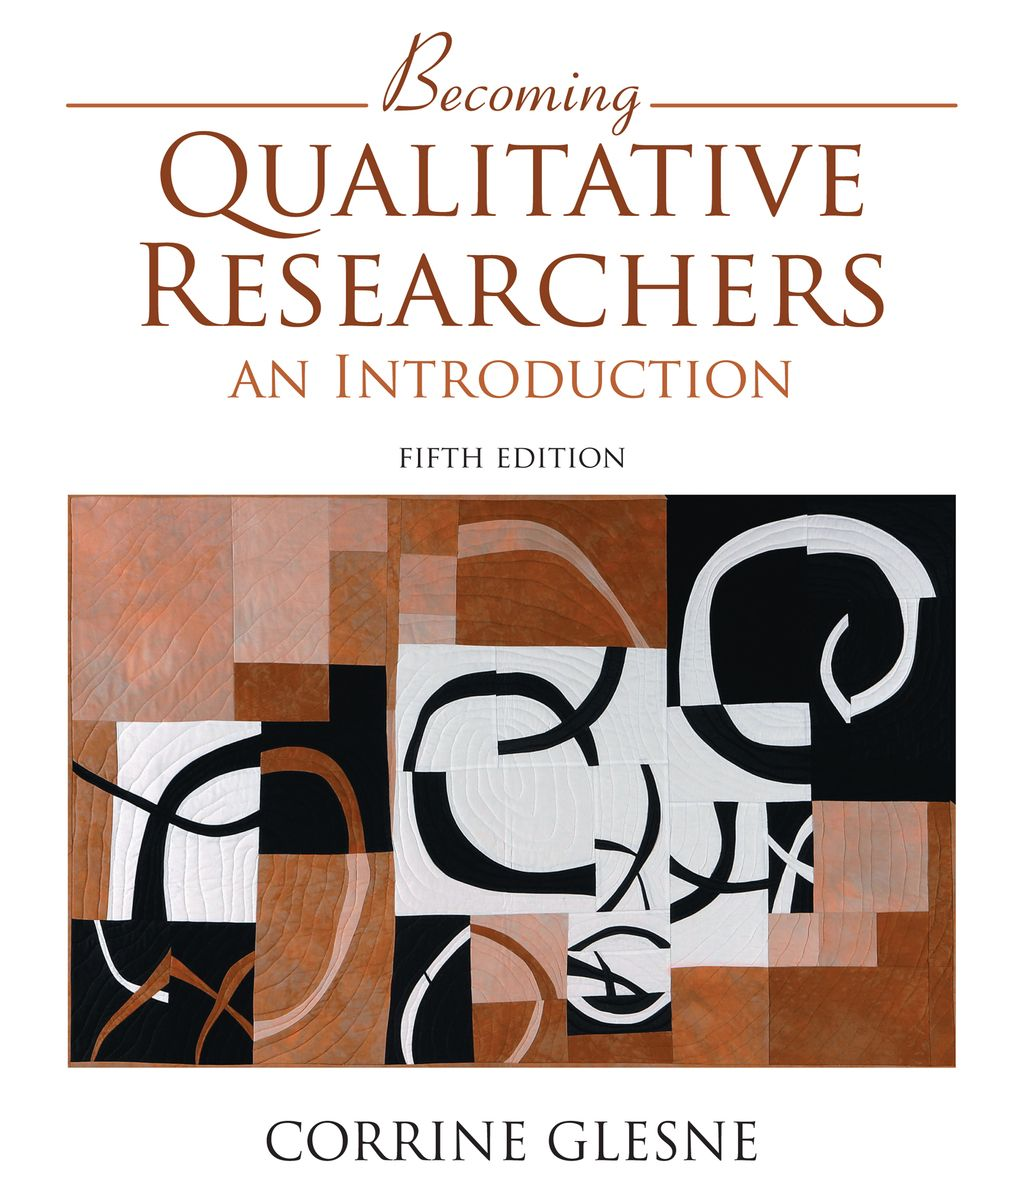 Becoming qualitative researchers an introduction pdf ...